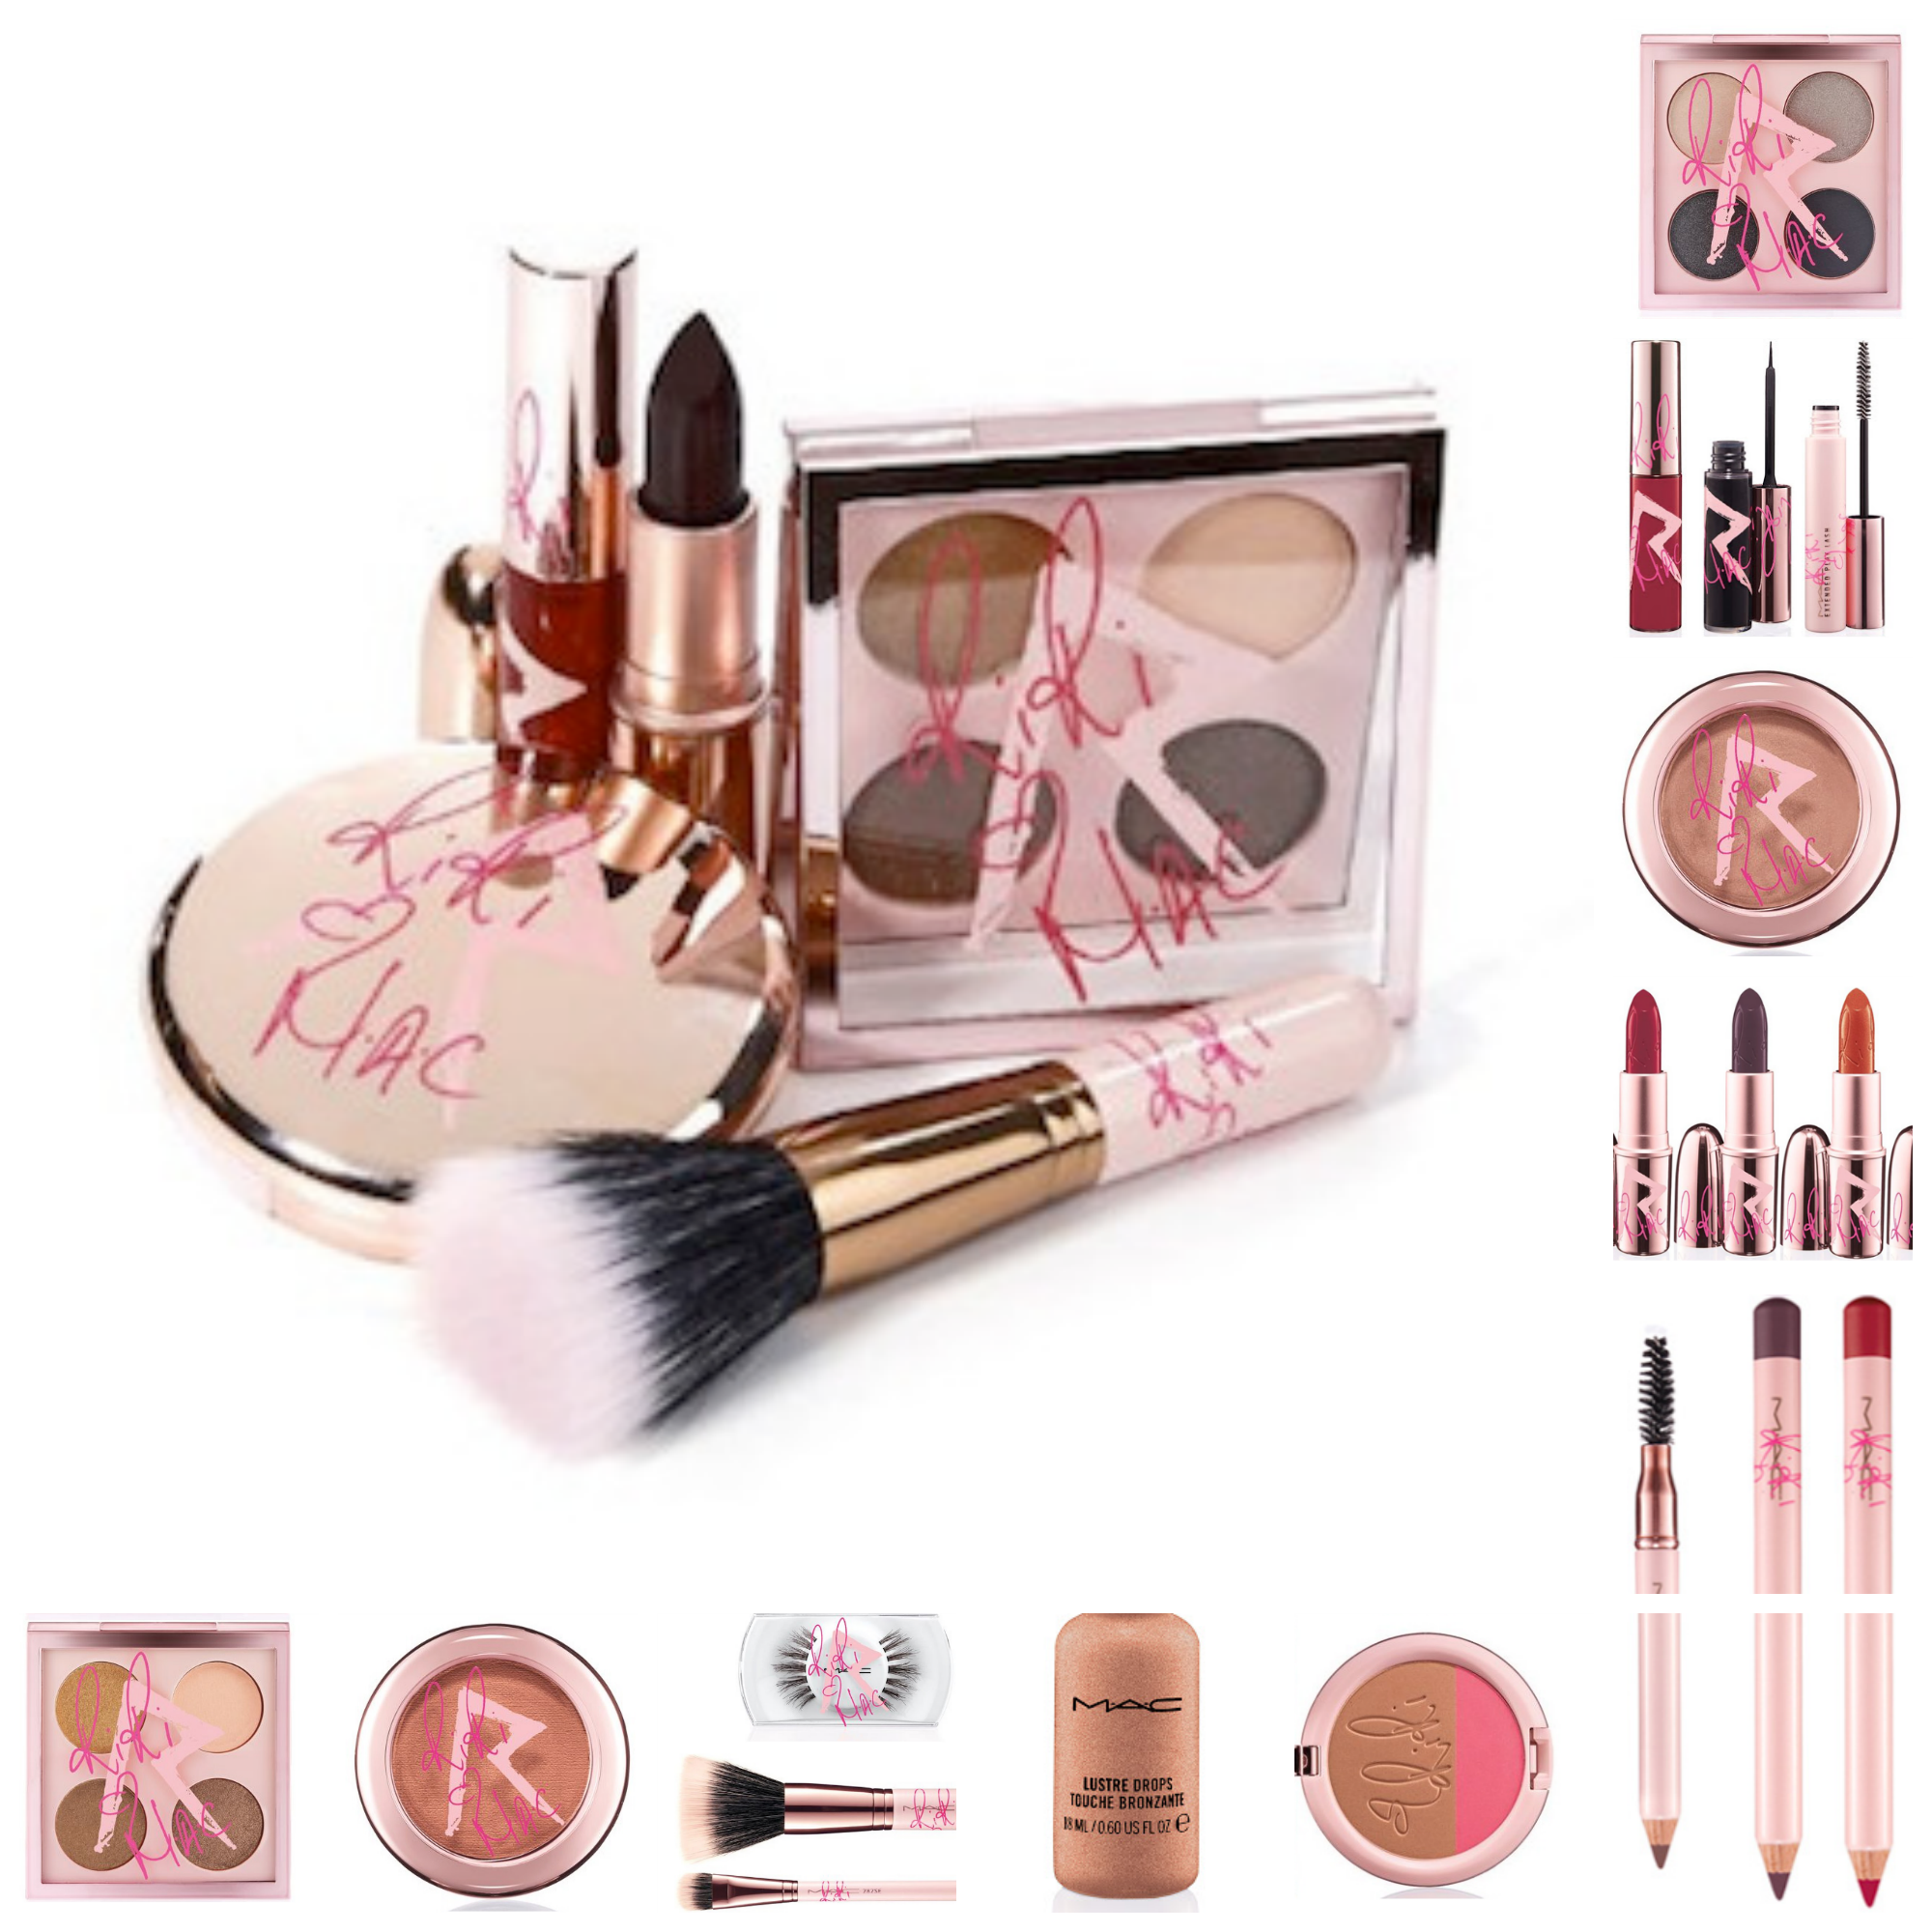 RiRi Loves Mac: New Collection Overview on southeastbymidwest.com